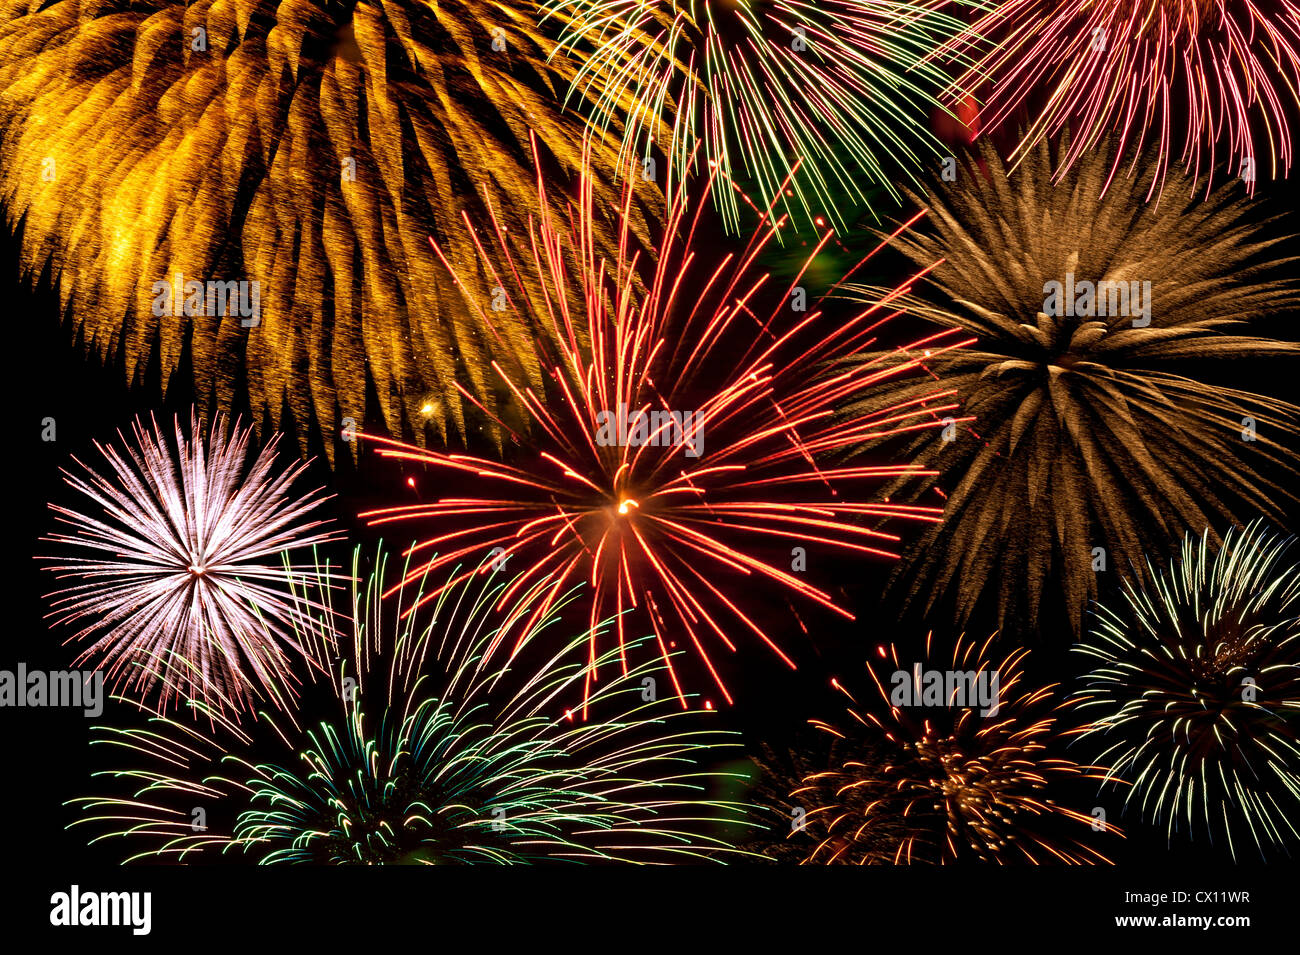 Firework display - Stock Image